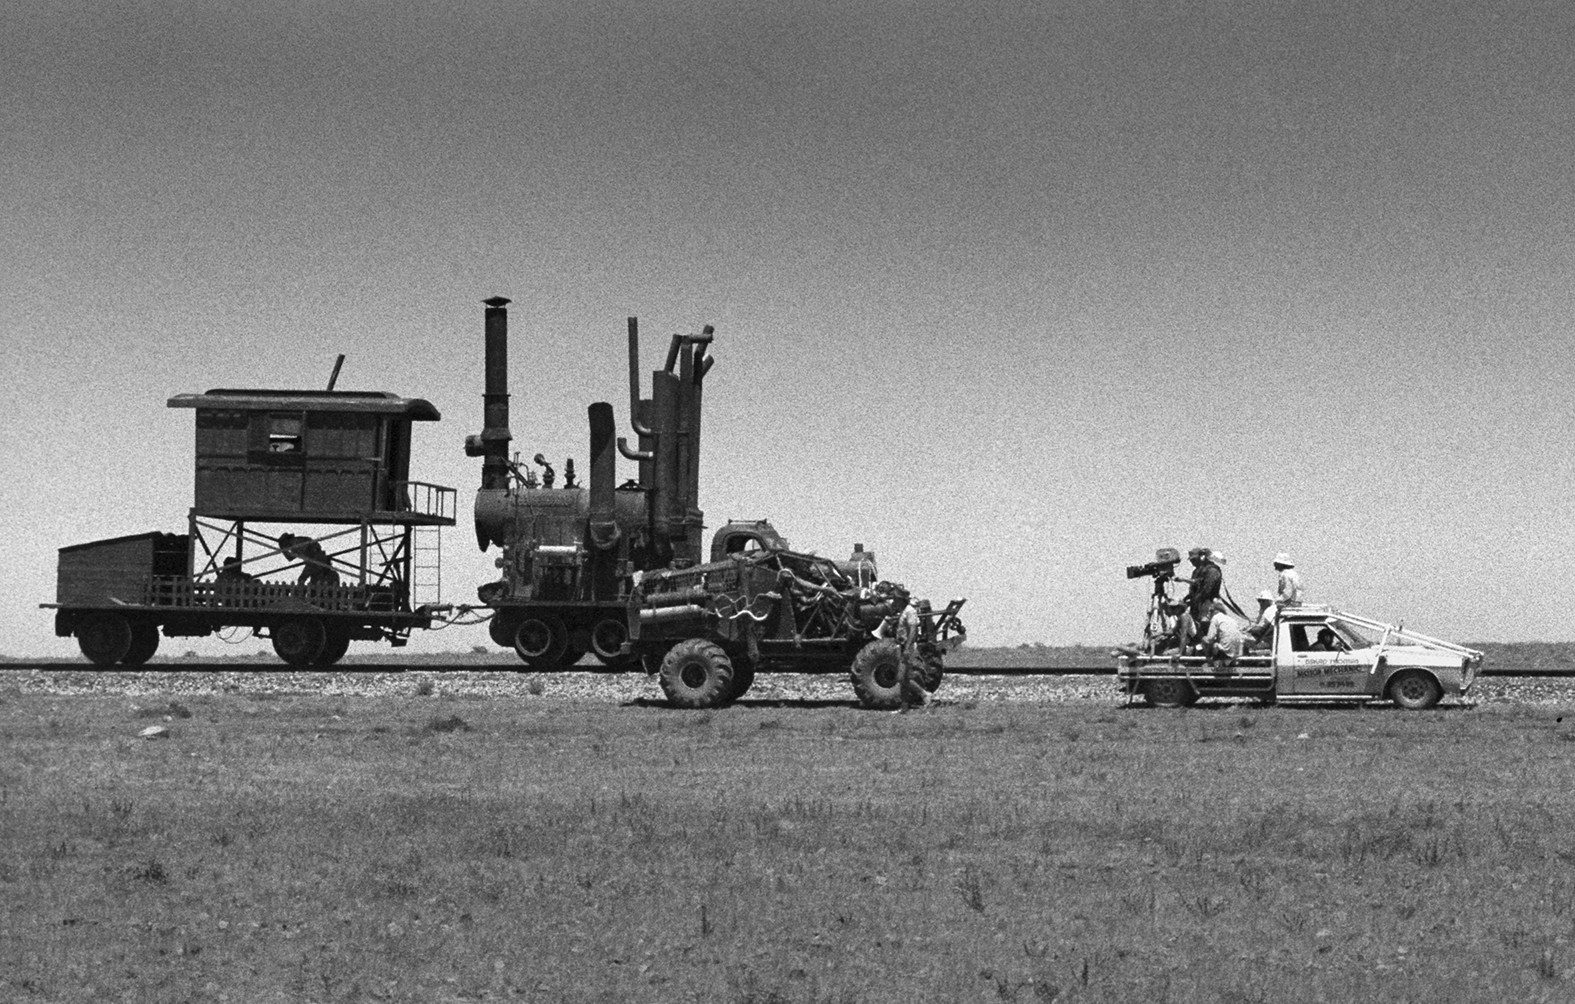 Old School Tracking Vehicle Behind the Scenes